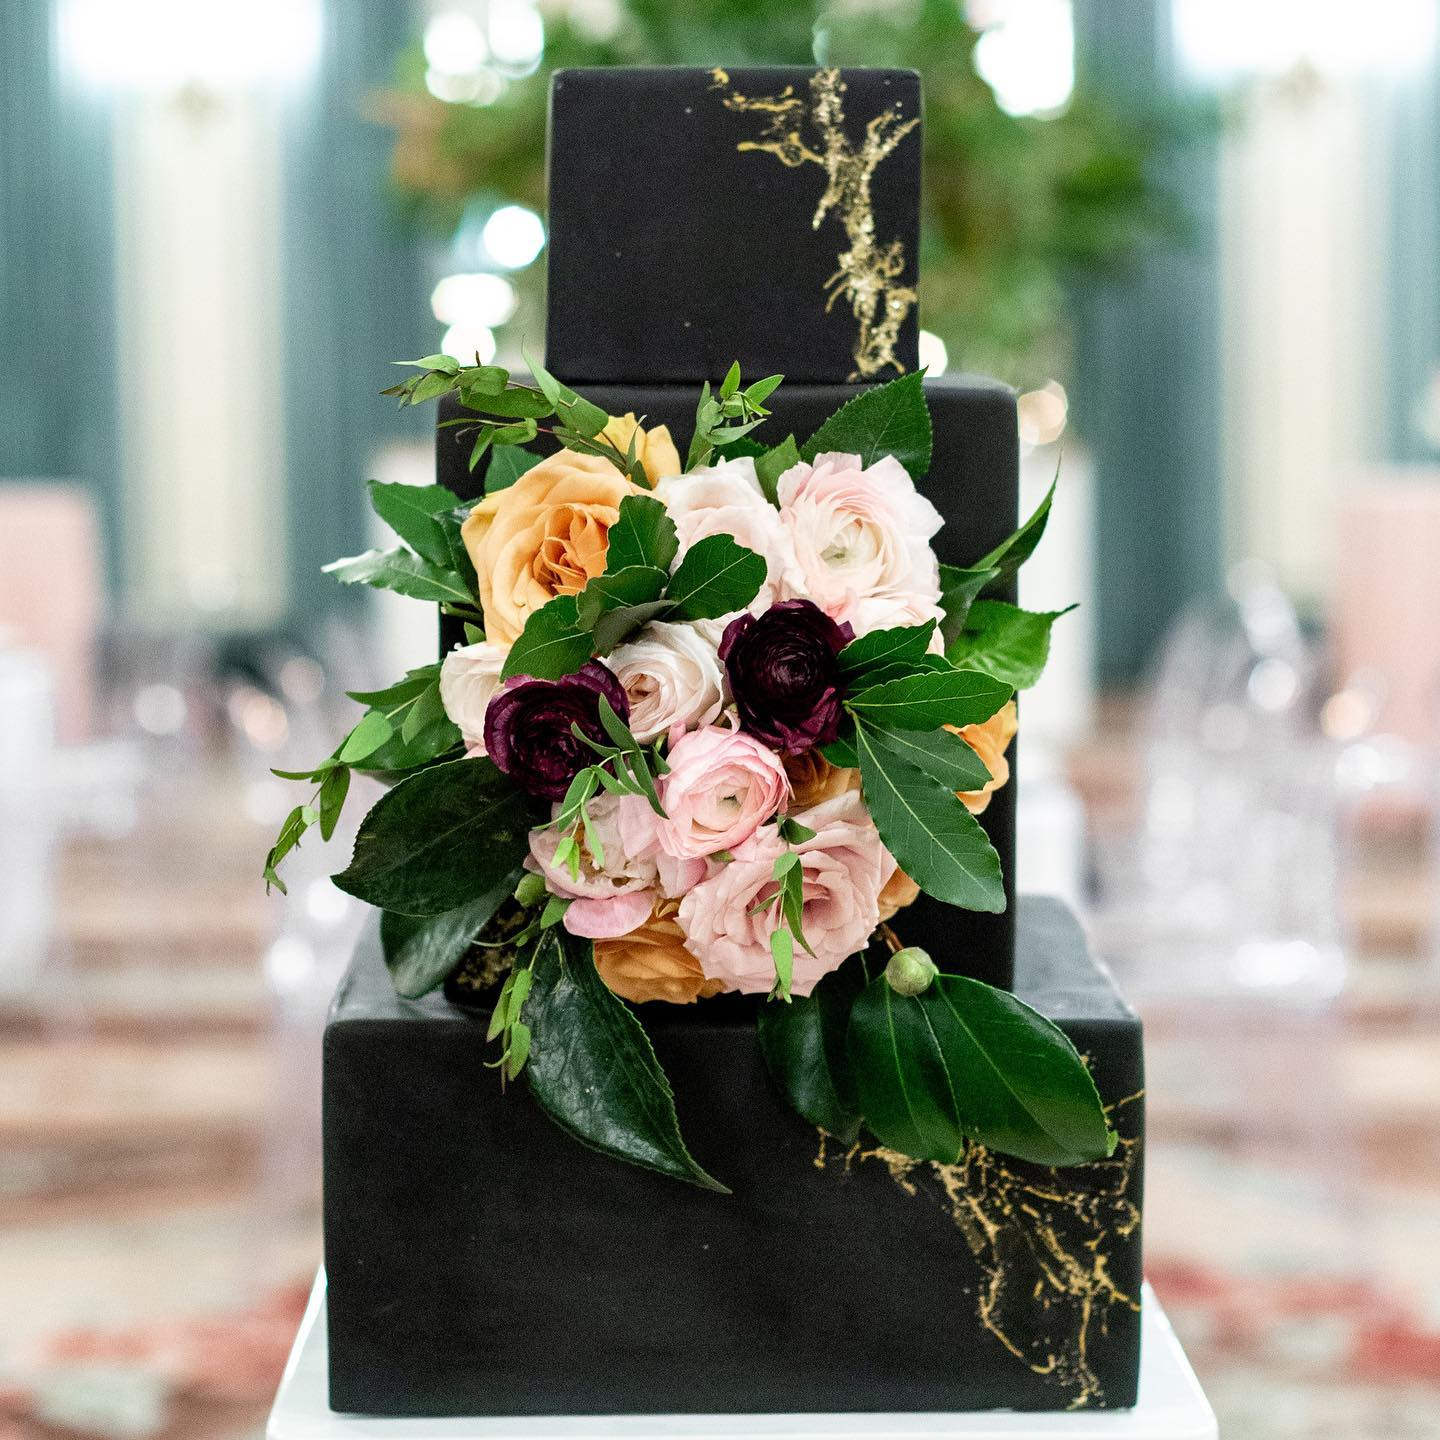 Black Square Wedding Cake with flowers by Passion for Cakes Vancouver Island